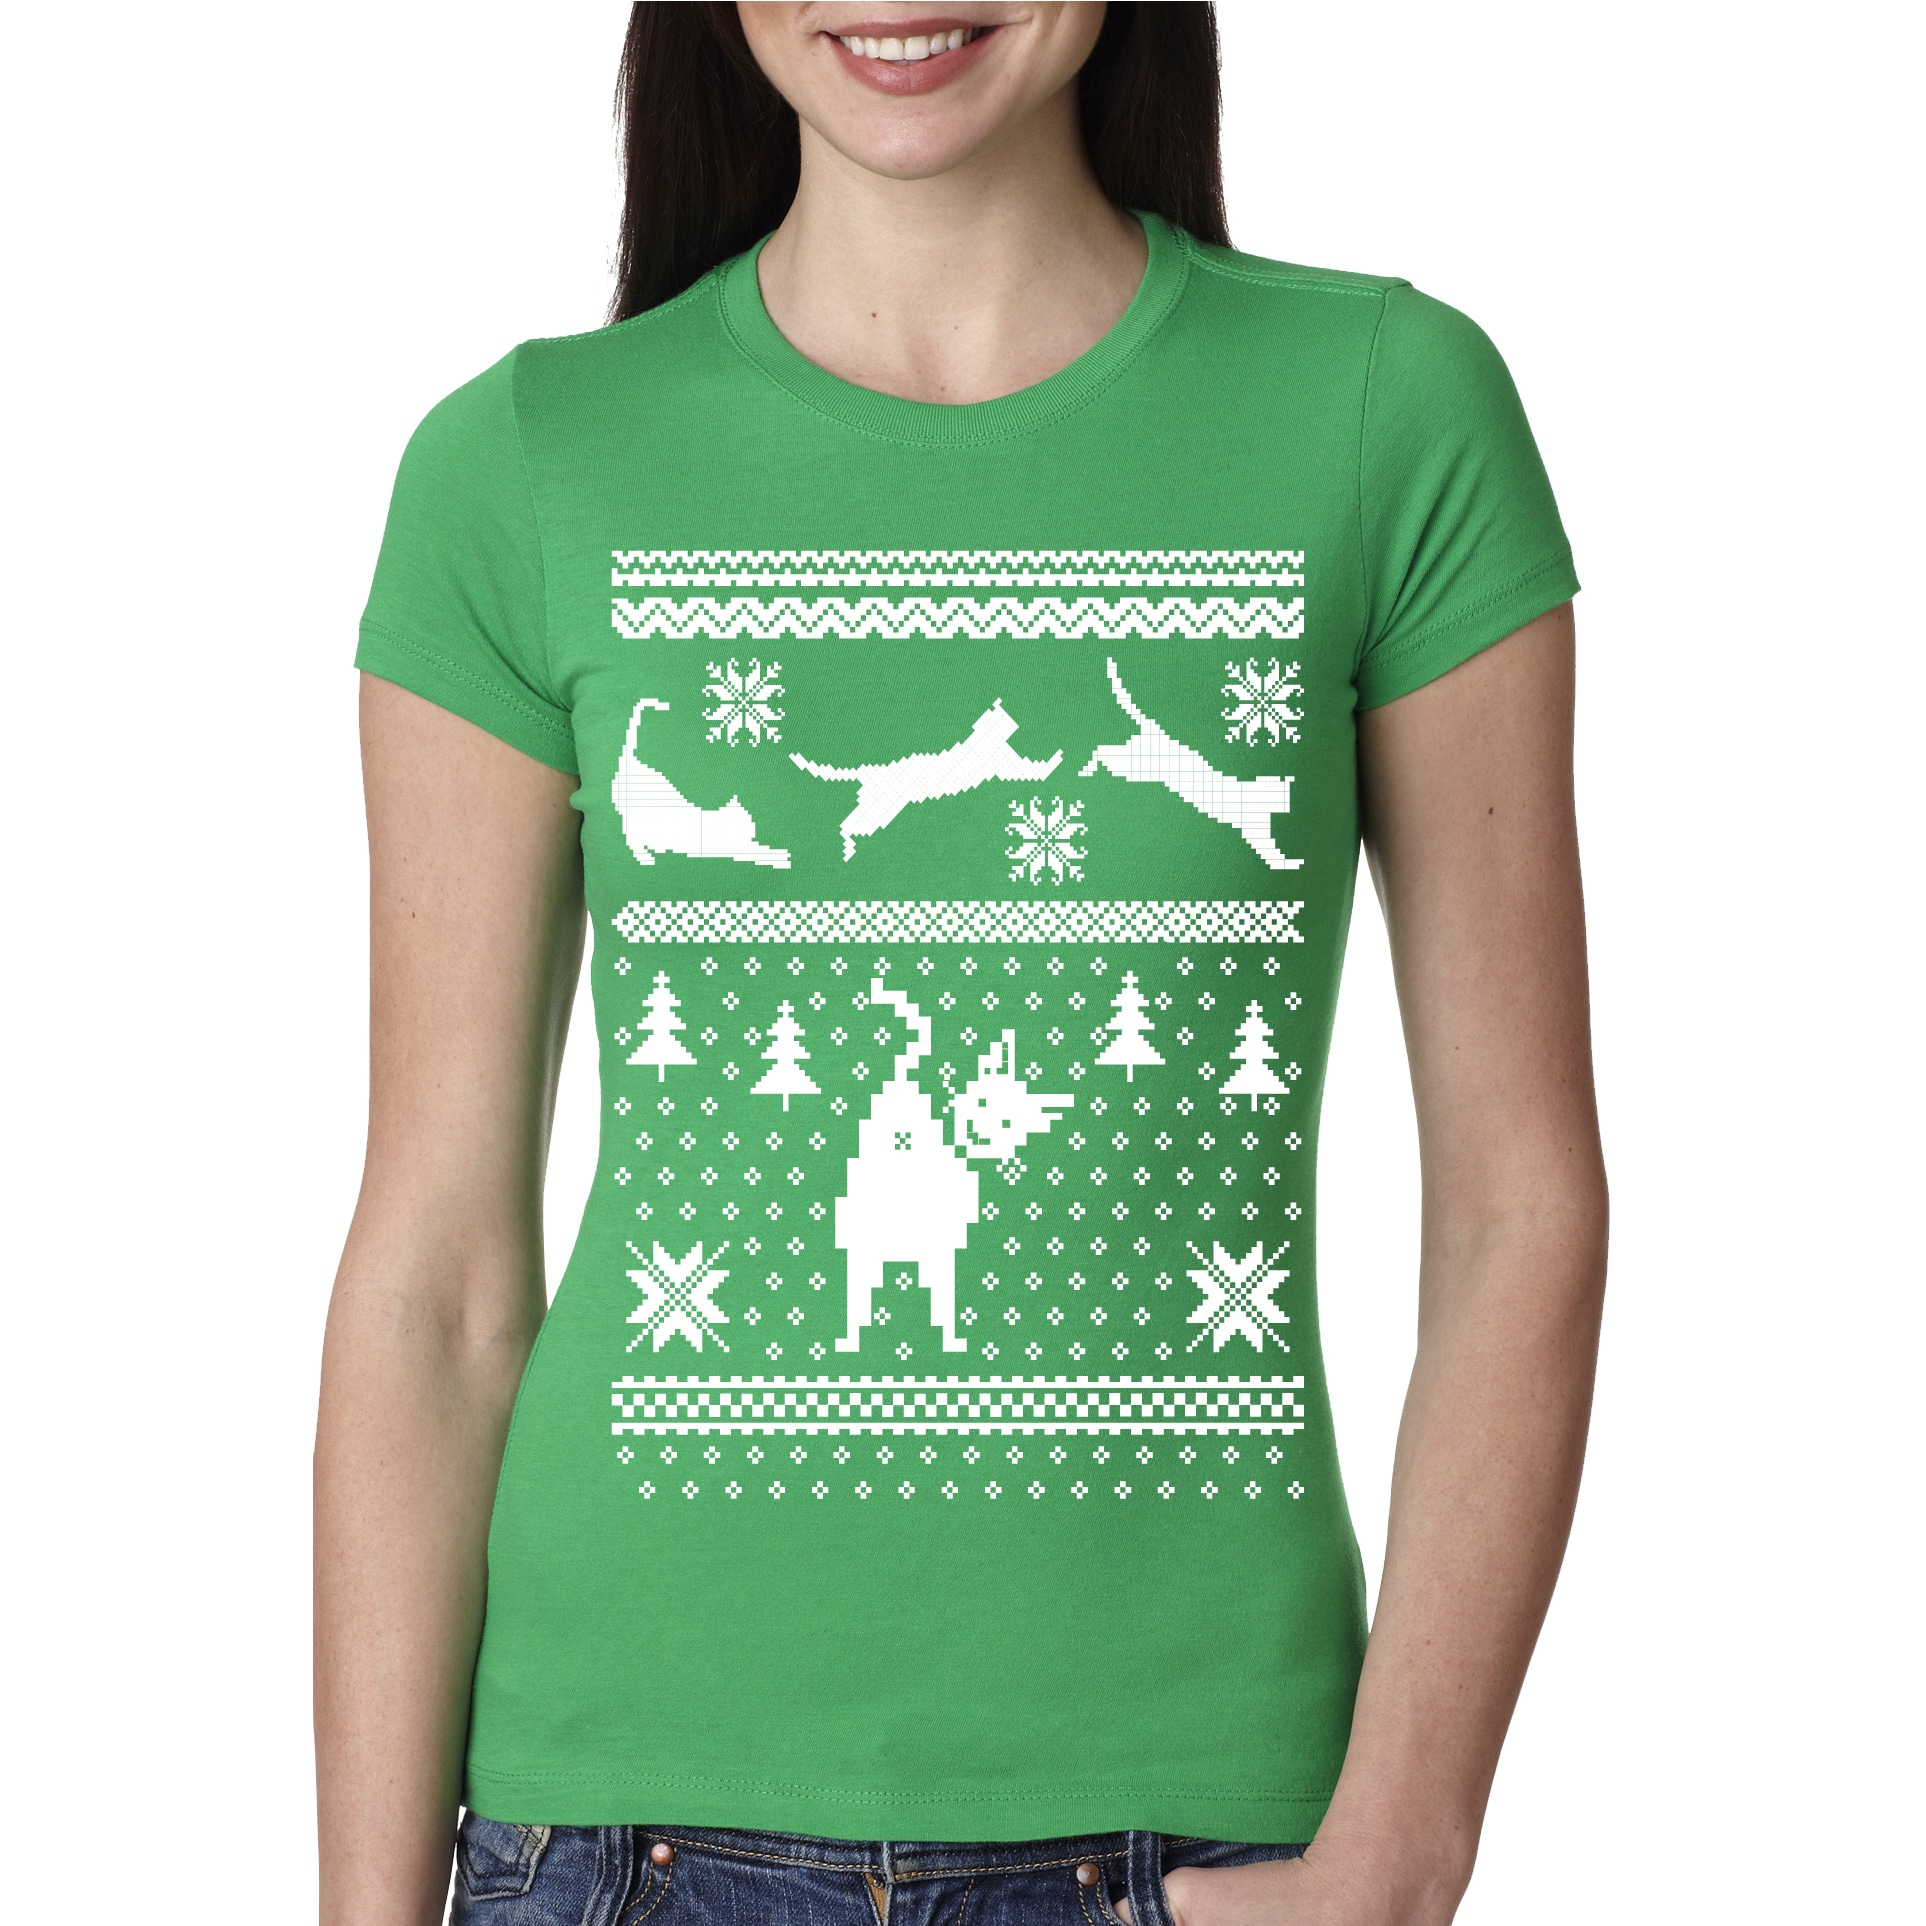 d97c81e0 Shop Women's Jumping Cats T Shirt Funny Ugly Christmas Sweater Kitten Tee  Xmas Shirt - Free Shipping On Orders Over $45 - Overstock - 18654748